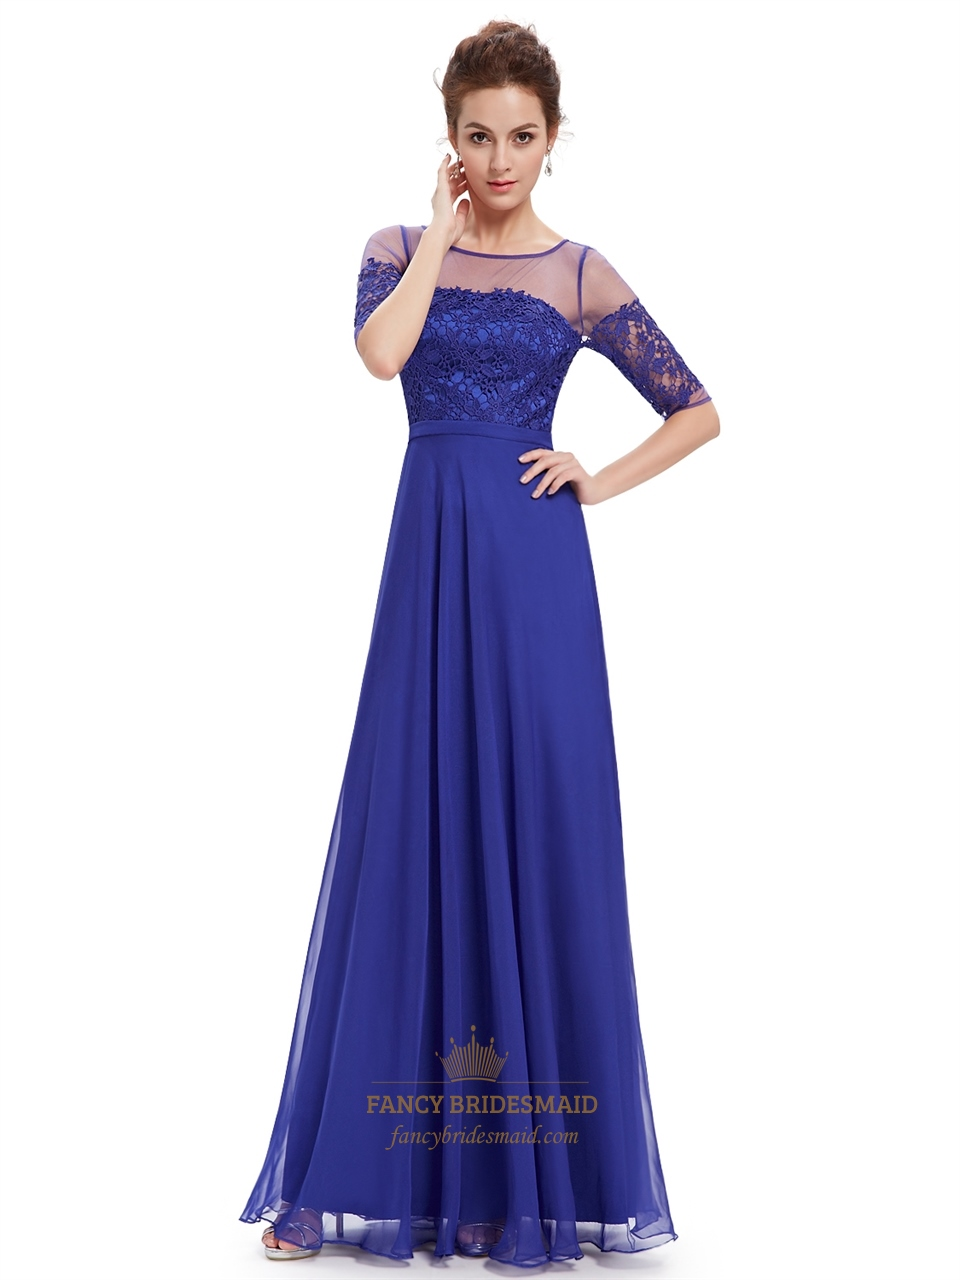 Royal blue summer lace bodice bridesmaid dresses with half sleeves royal blue summer lace bodice bridesmaid dresses with half sleeves ombrellifo Image collections